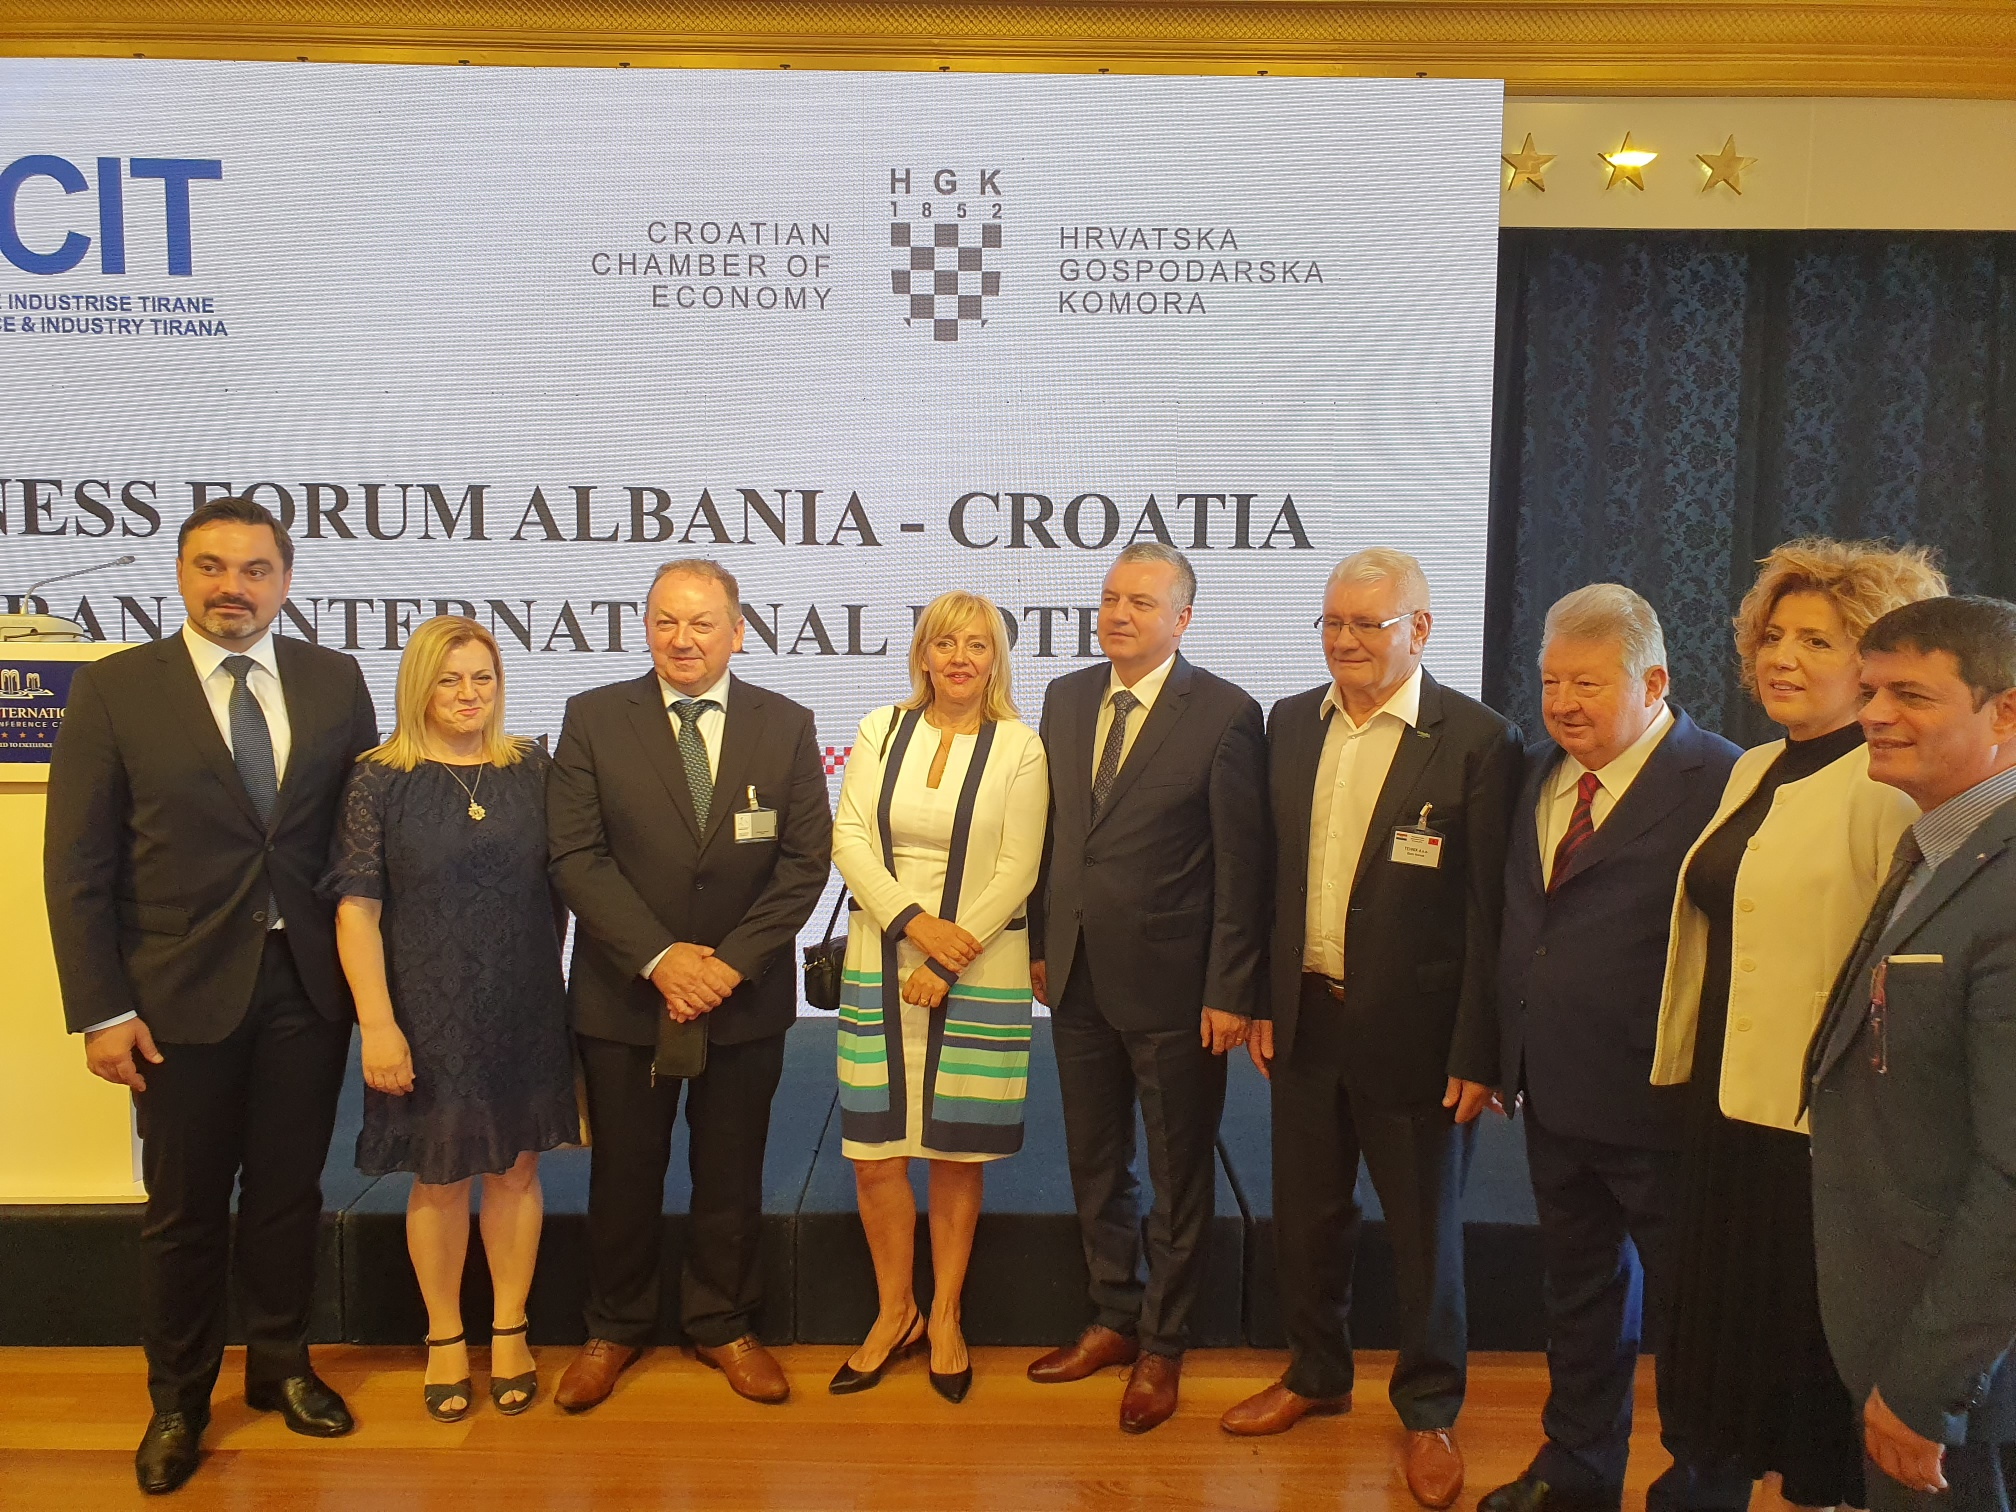 Business forum Albania – Croatia in Tirana